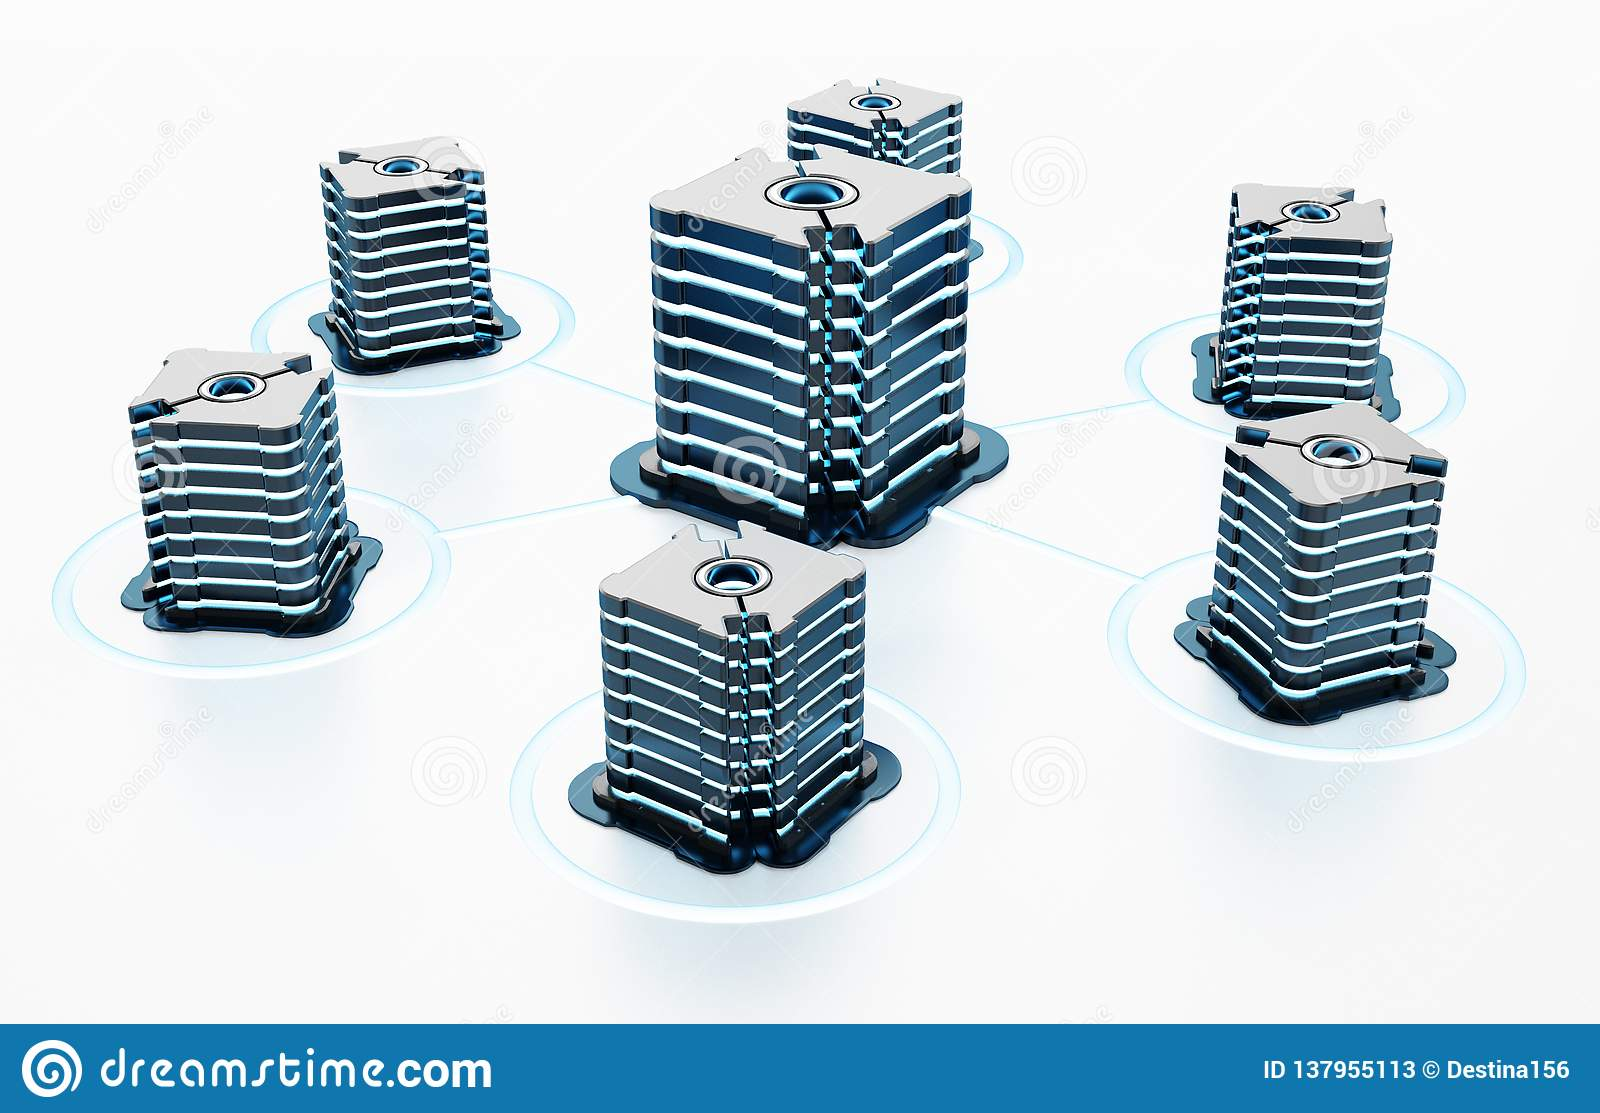 Generic futuristic network servers connected to each other. 3D illustration